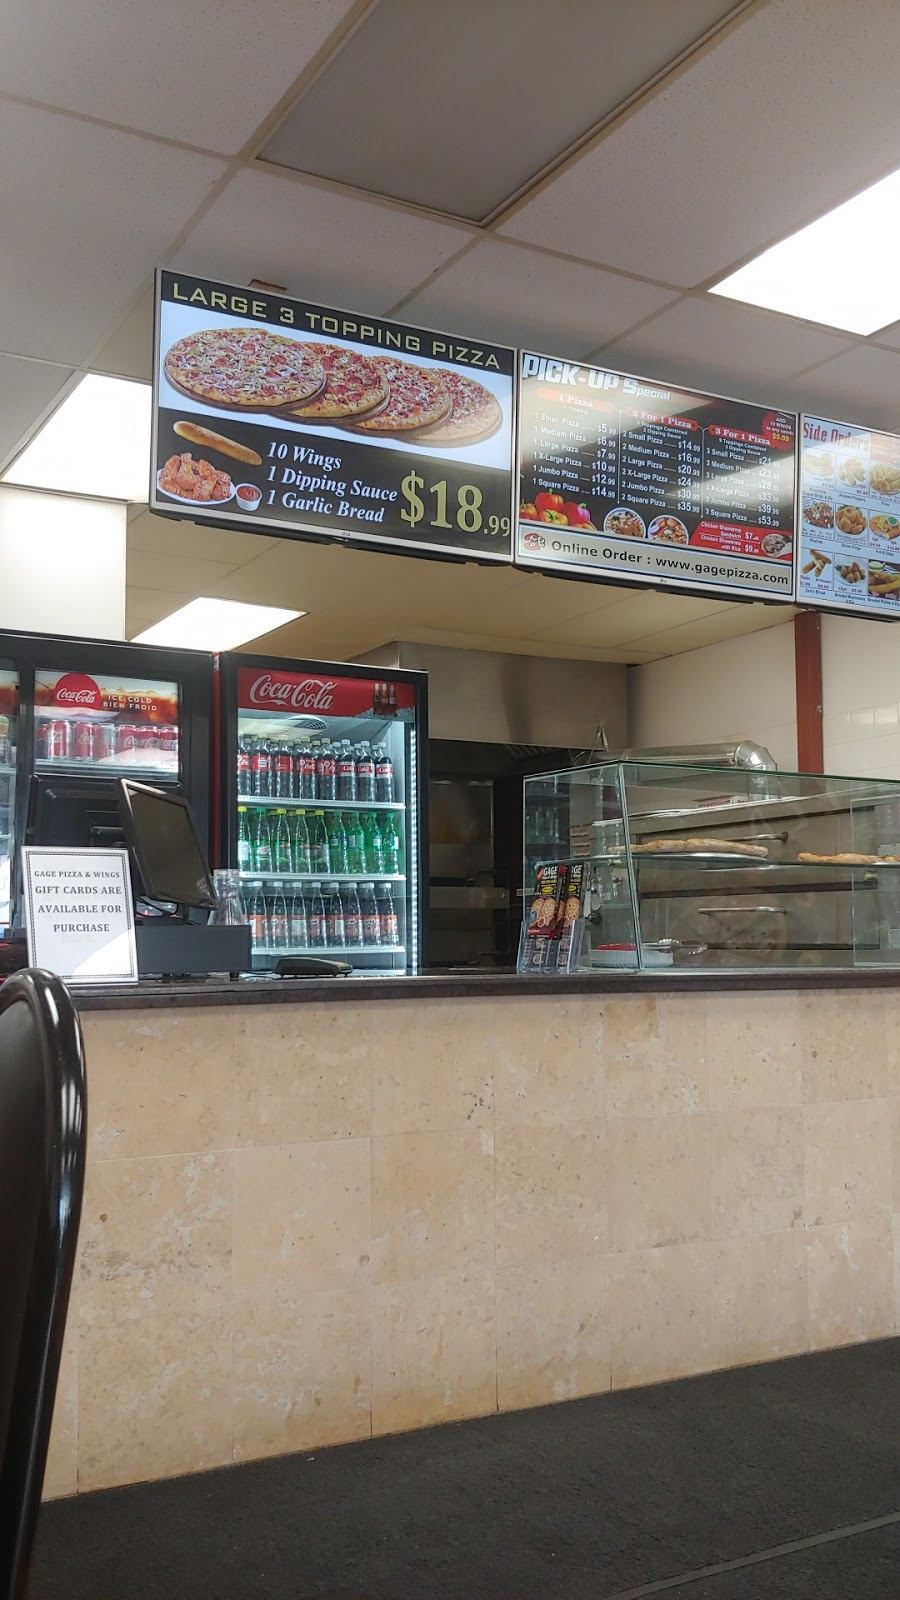 Gage Pizza & Wings | restaurant | 804 Upper Gage Ave, Hamilton, ON L8V 4K4, Canada | 9055744343 OR +1 905-574-4343